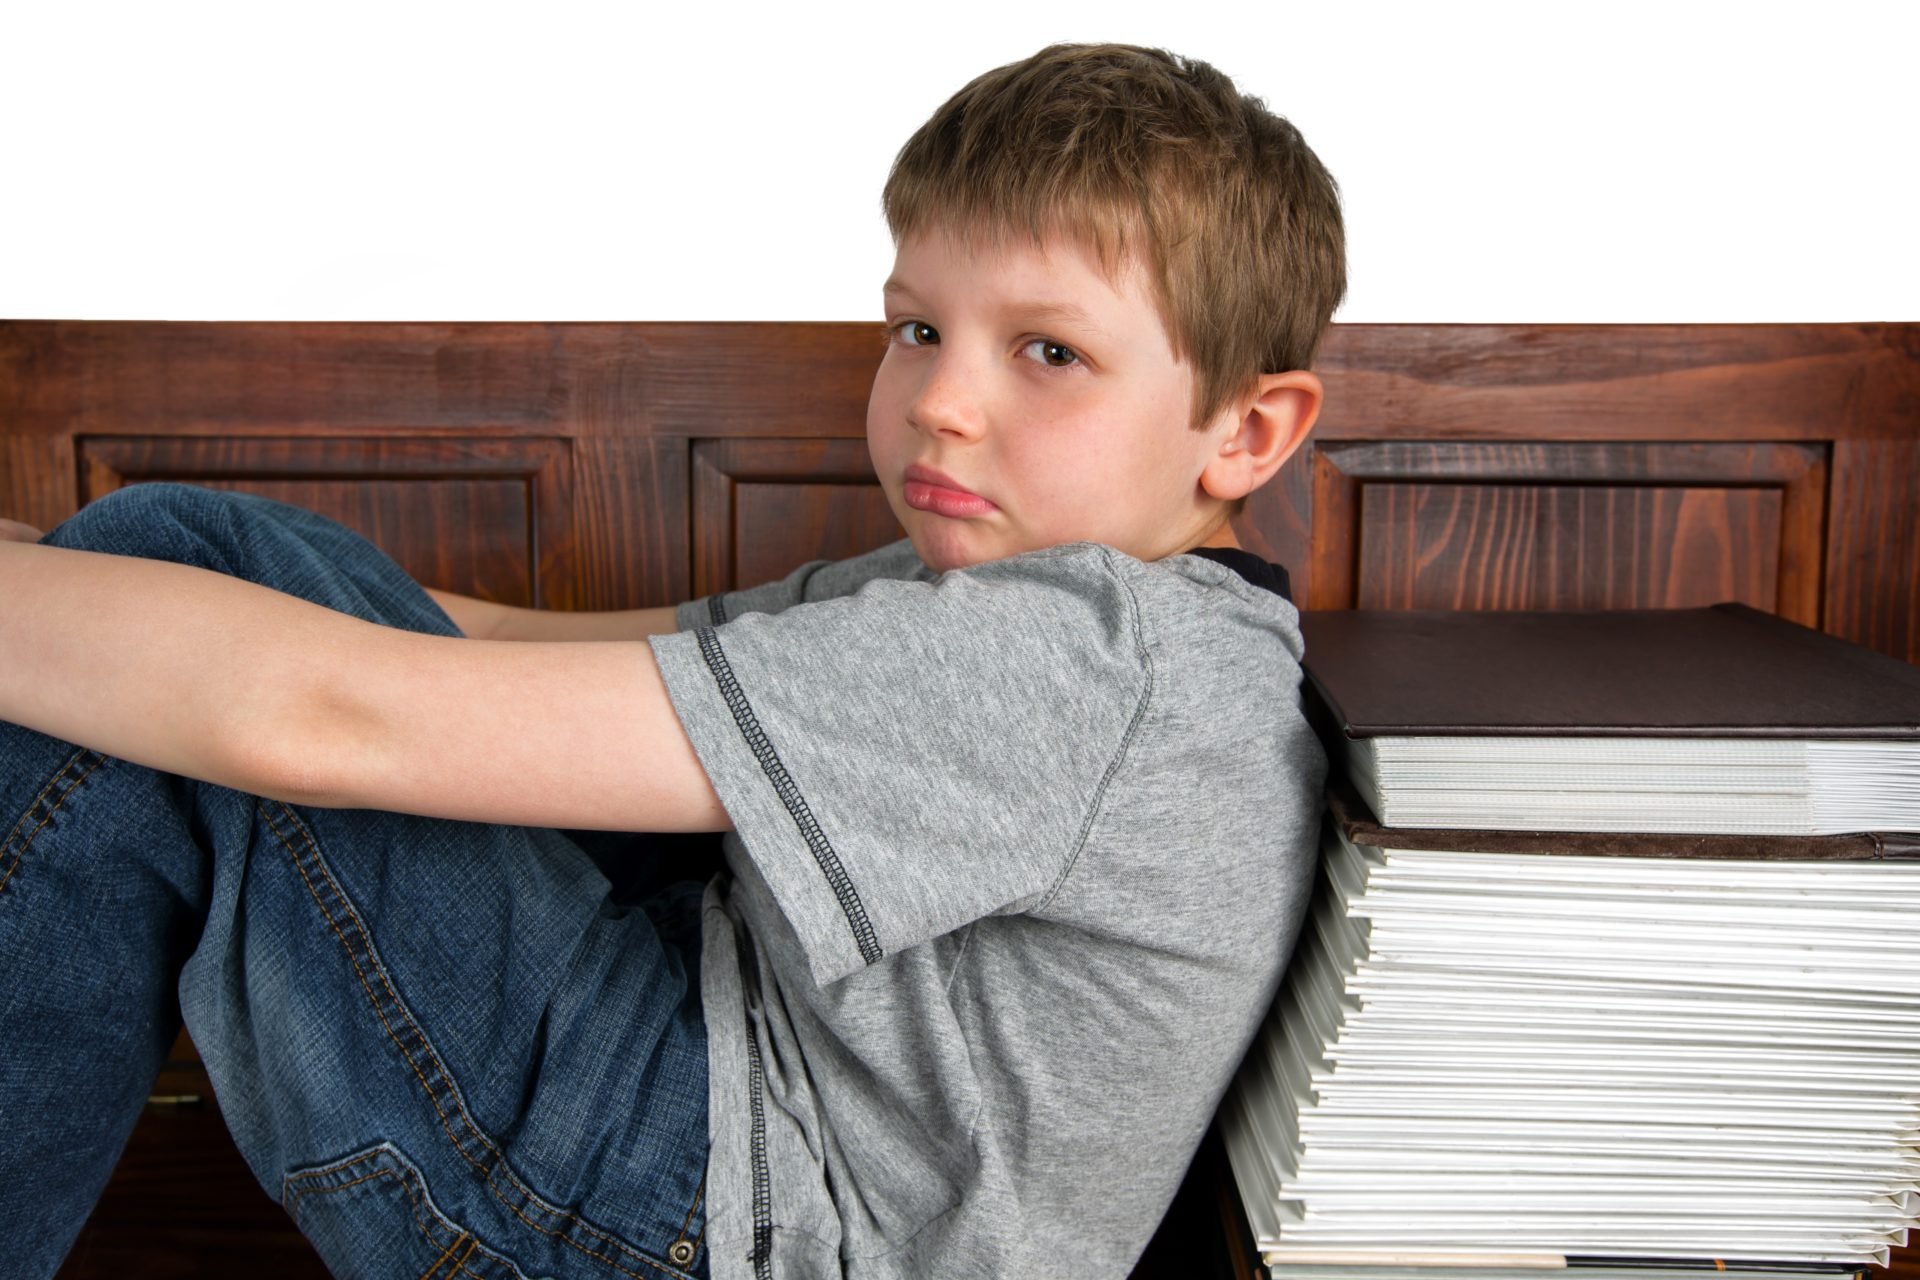 Adhd And Sad Treatment And Symptoms >> Adhd Symptoms Diagnosis And Treatment Essential Health Info